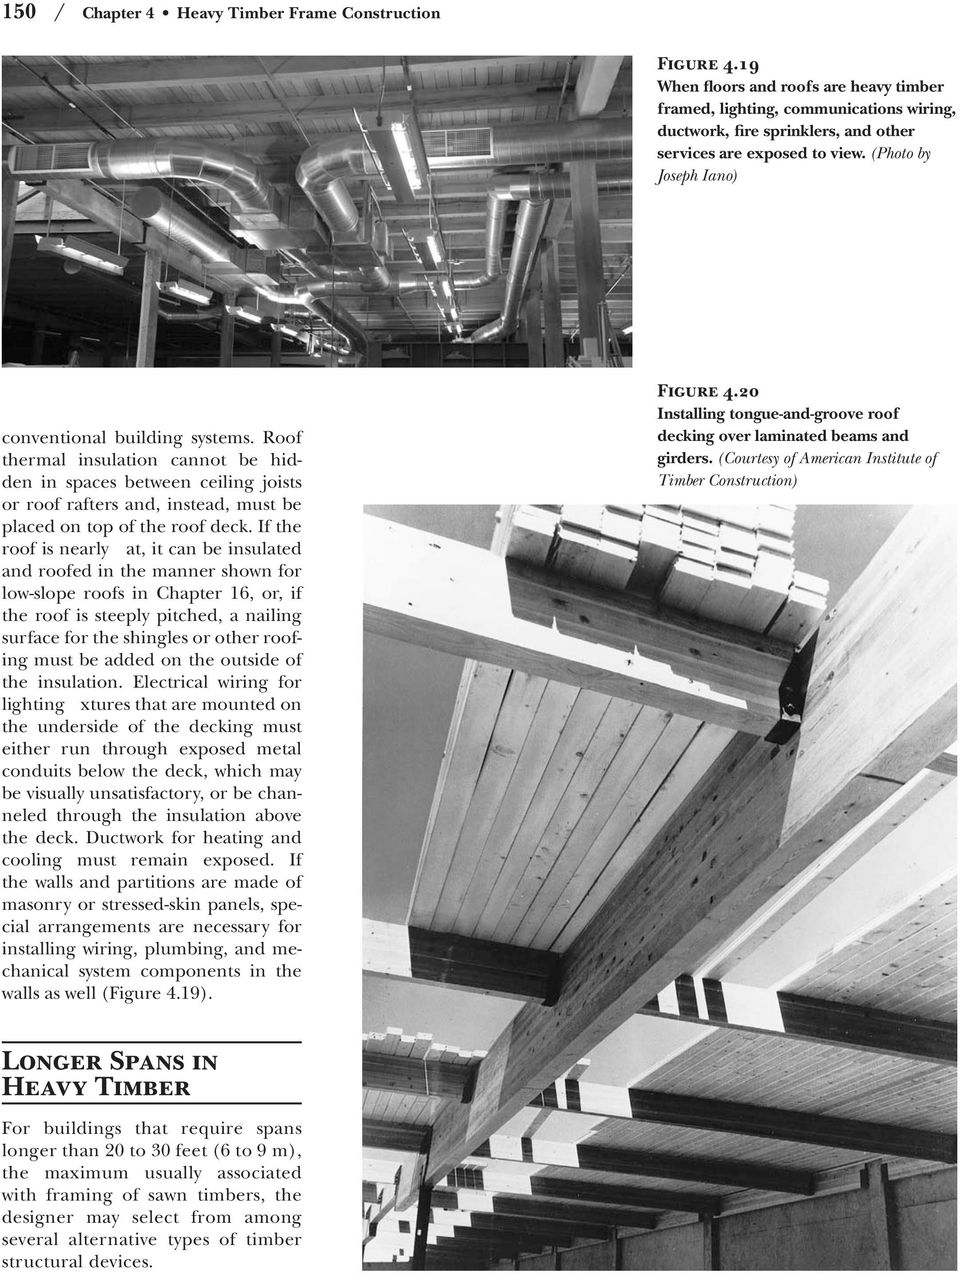 Heavy Timber Frame Construction - PDF